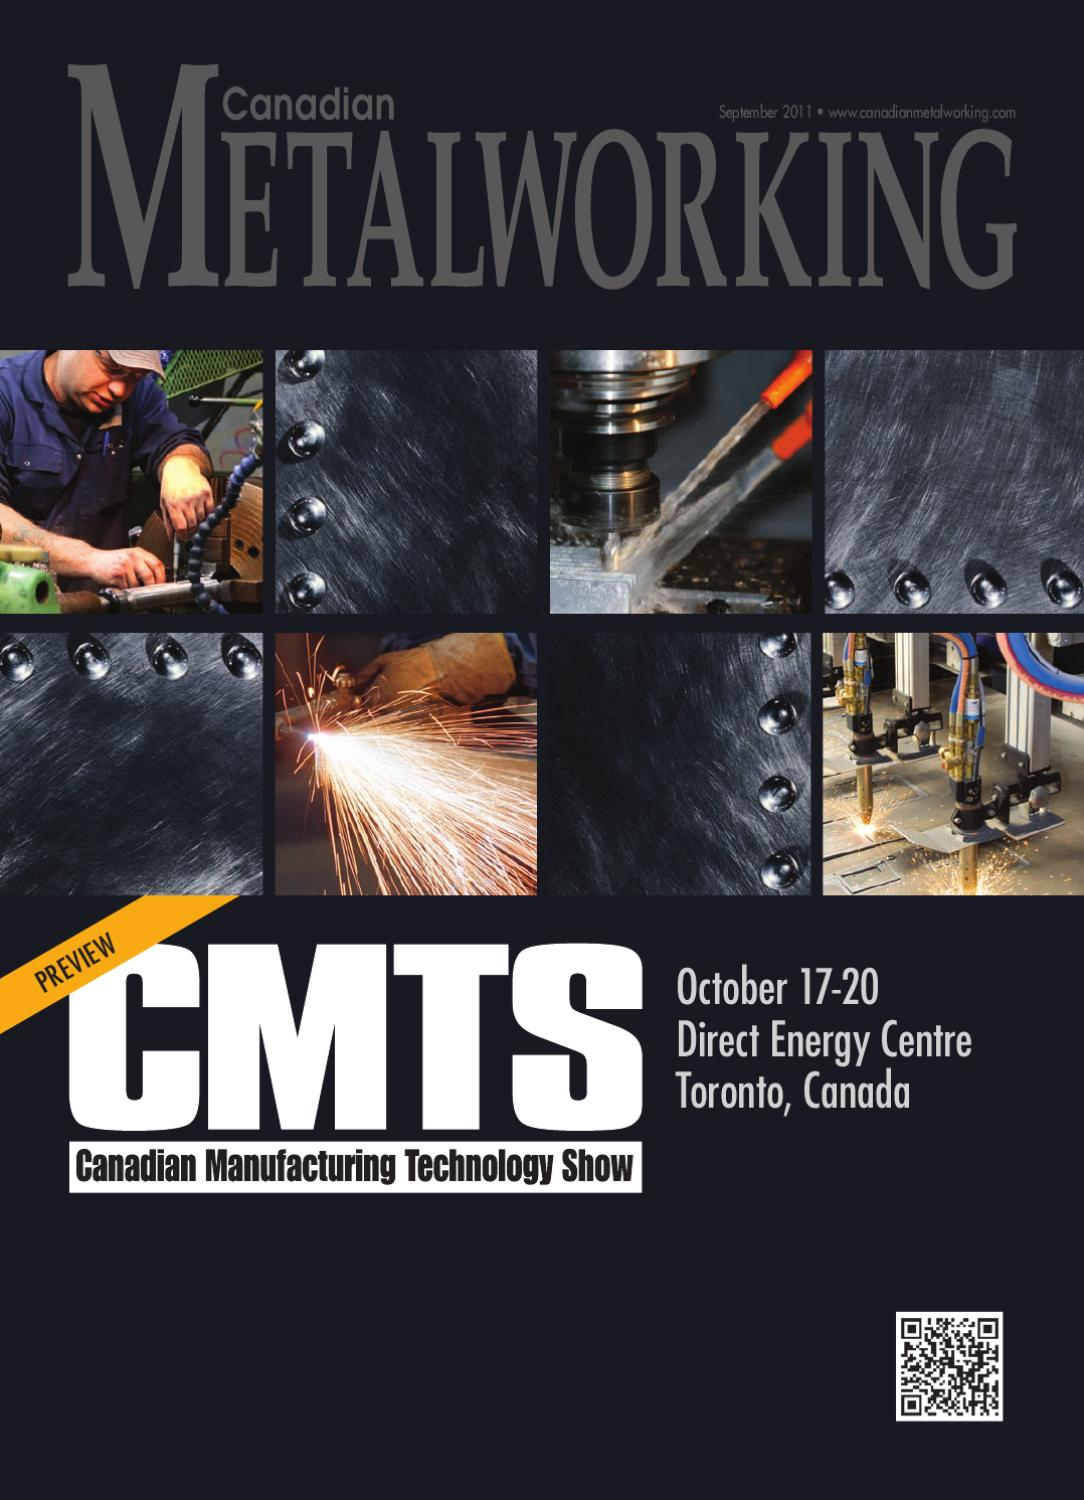 Canadian Metalworking By Annex Business Media Issuu - 282 Goldene Uhr Von Haas Cie